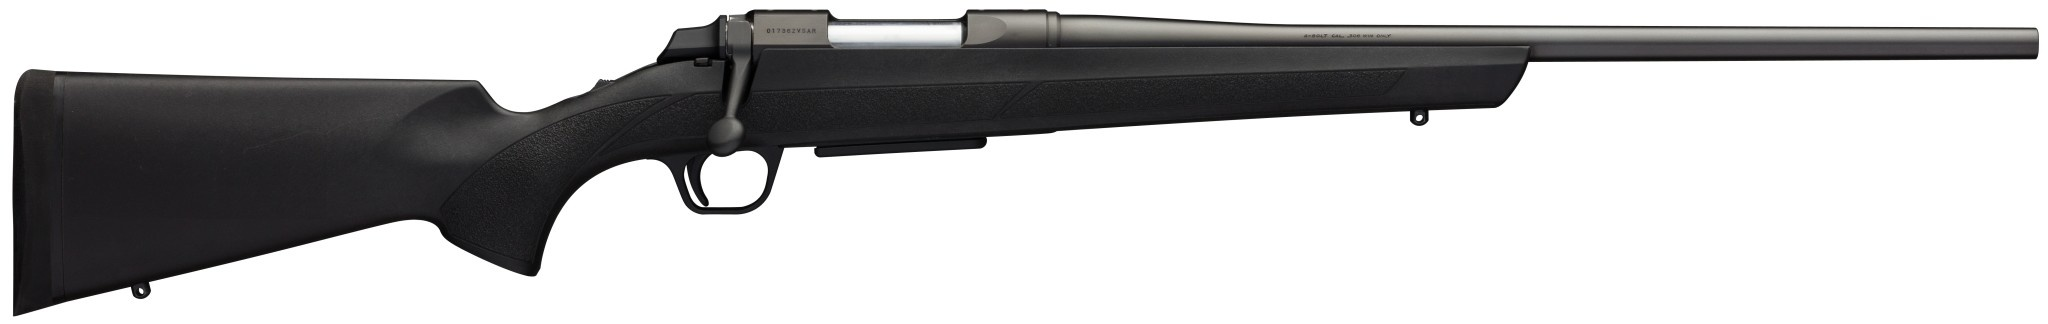 BROWNING BROWNING AB3 MICRO STALKER RIFLE, 243 WIN, BLACK